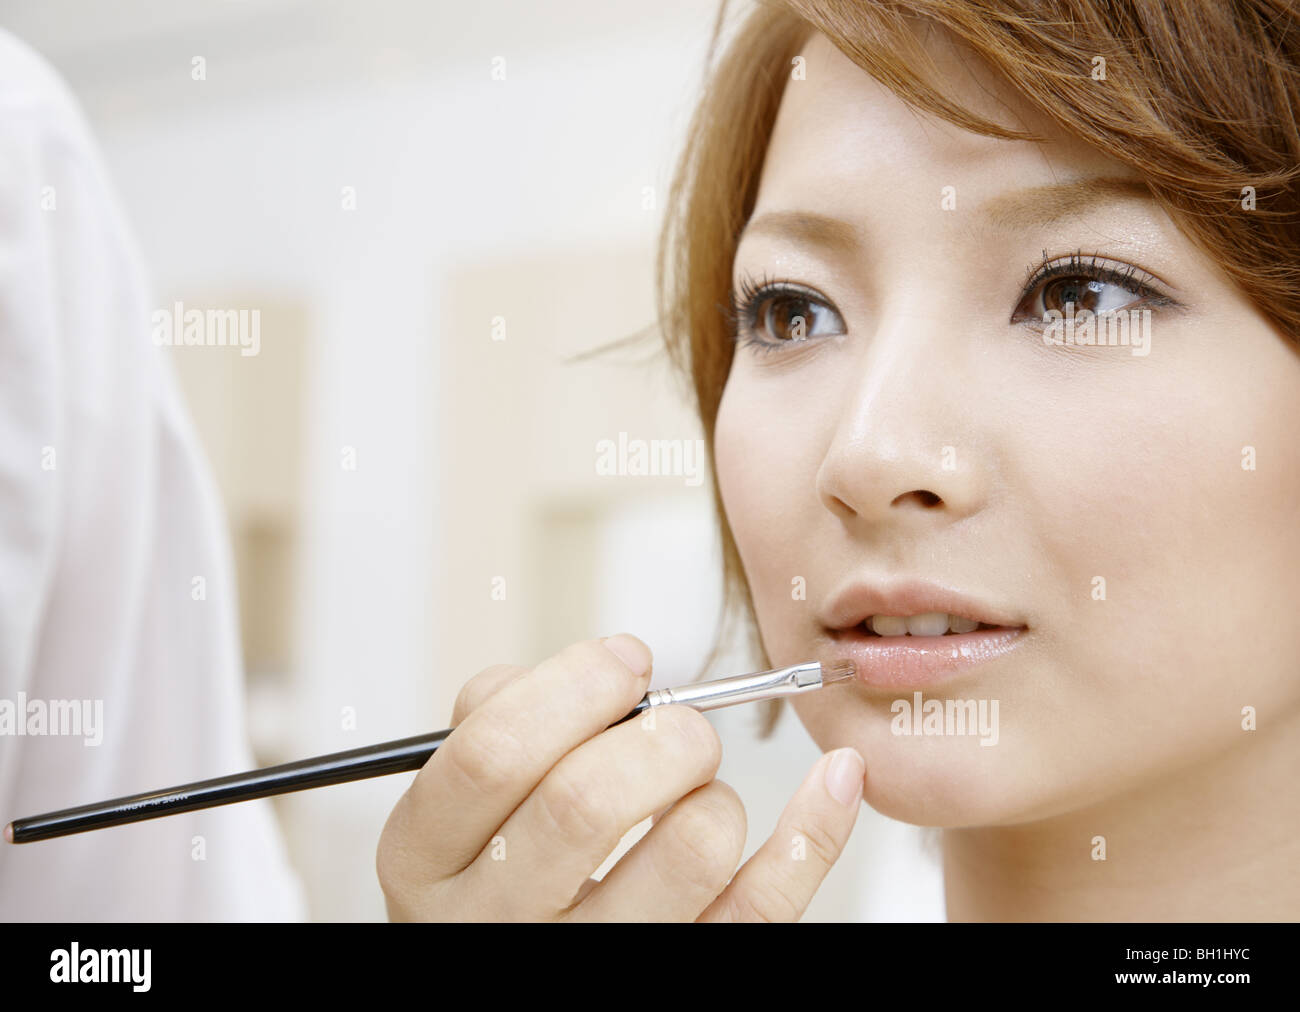 A young woman getting her makeup done - Stock Image